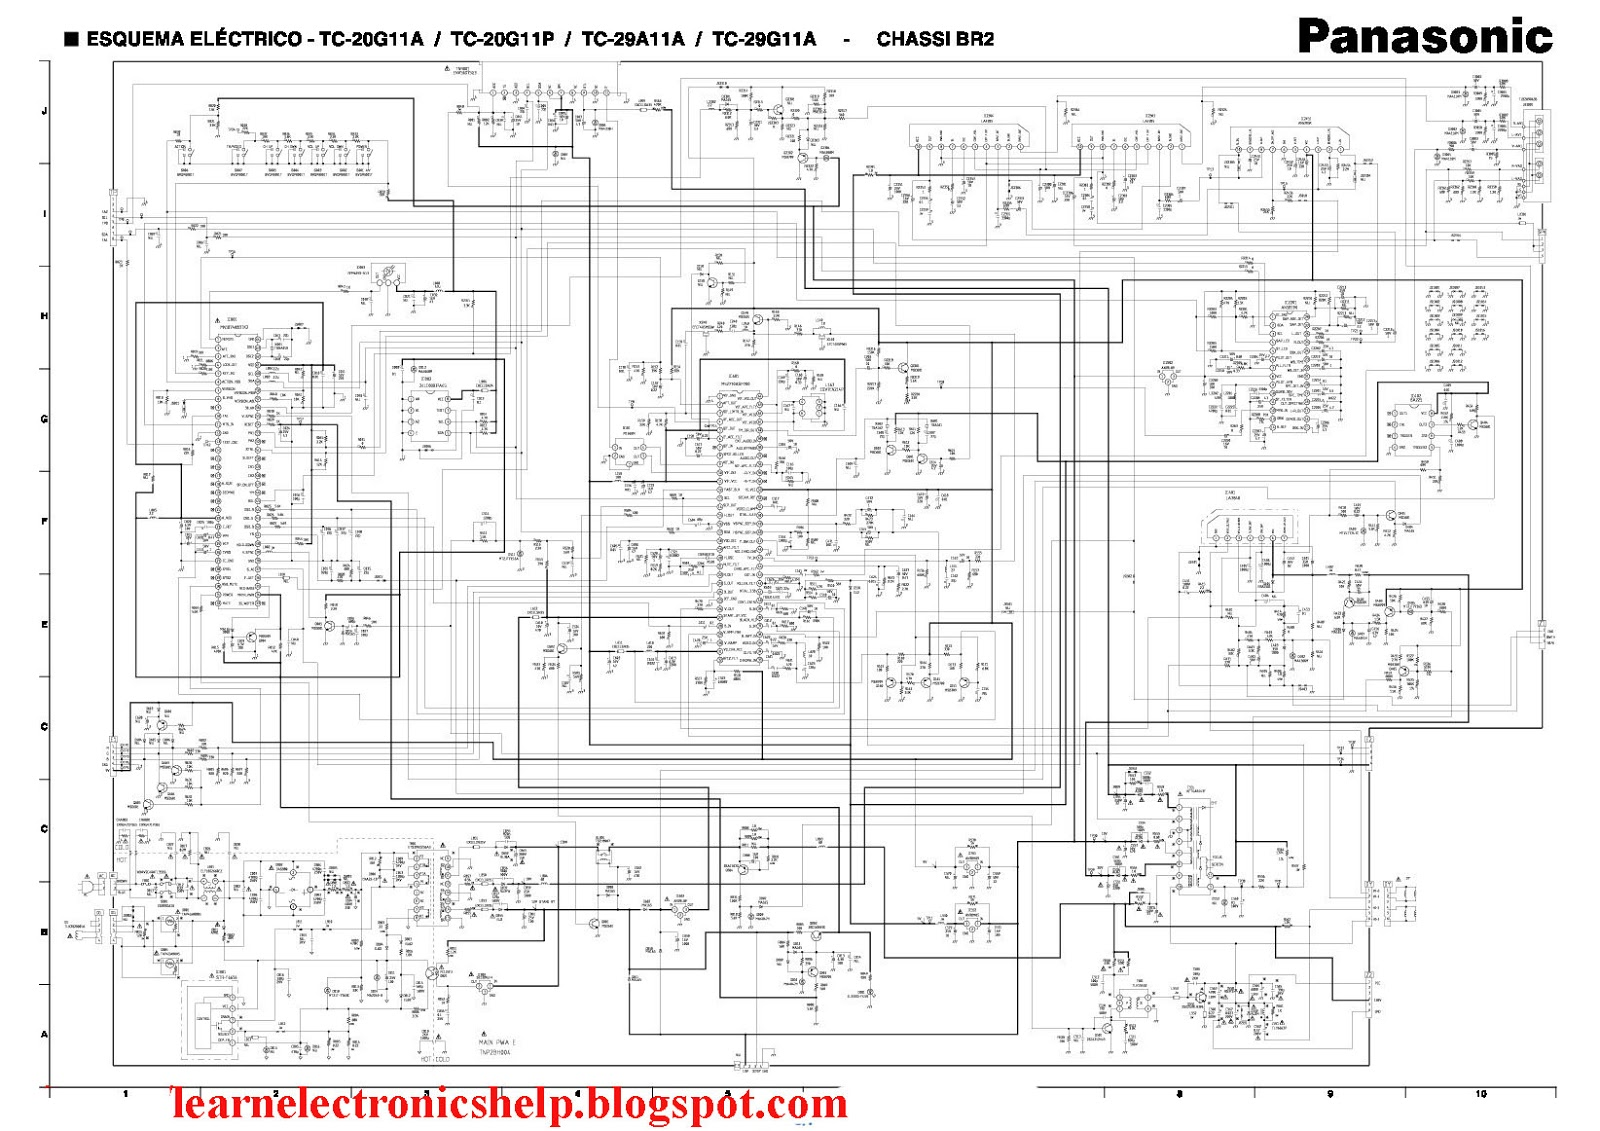 Outstanding Panasonic Tv Circuit Diagram Wiring Cloud Oideiuggs Outletorg